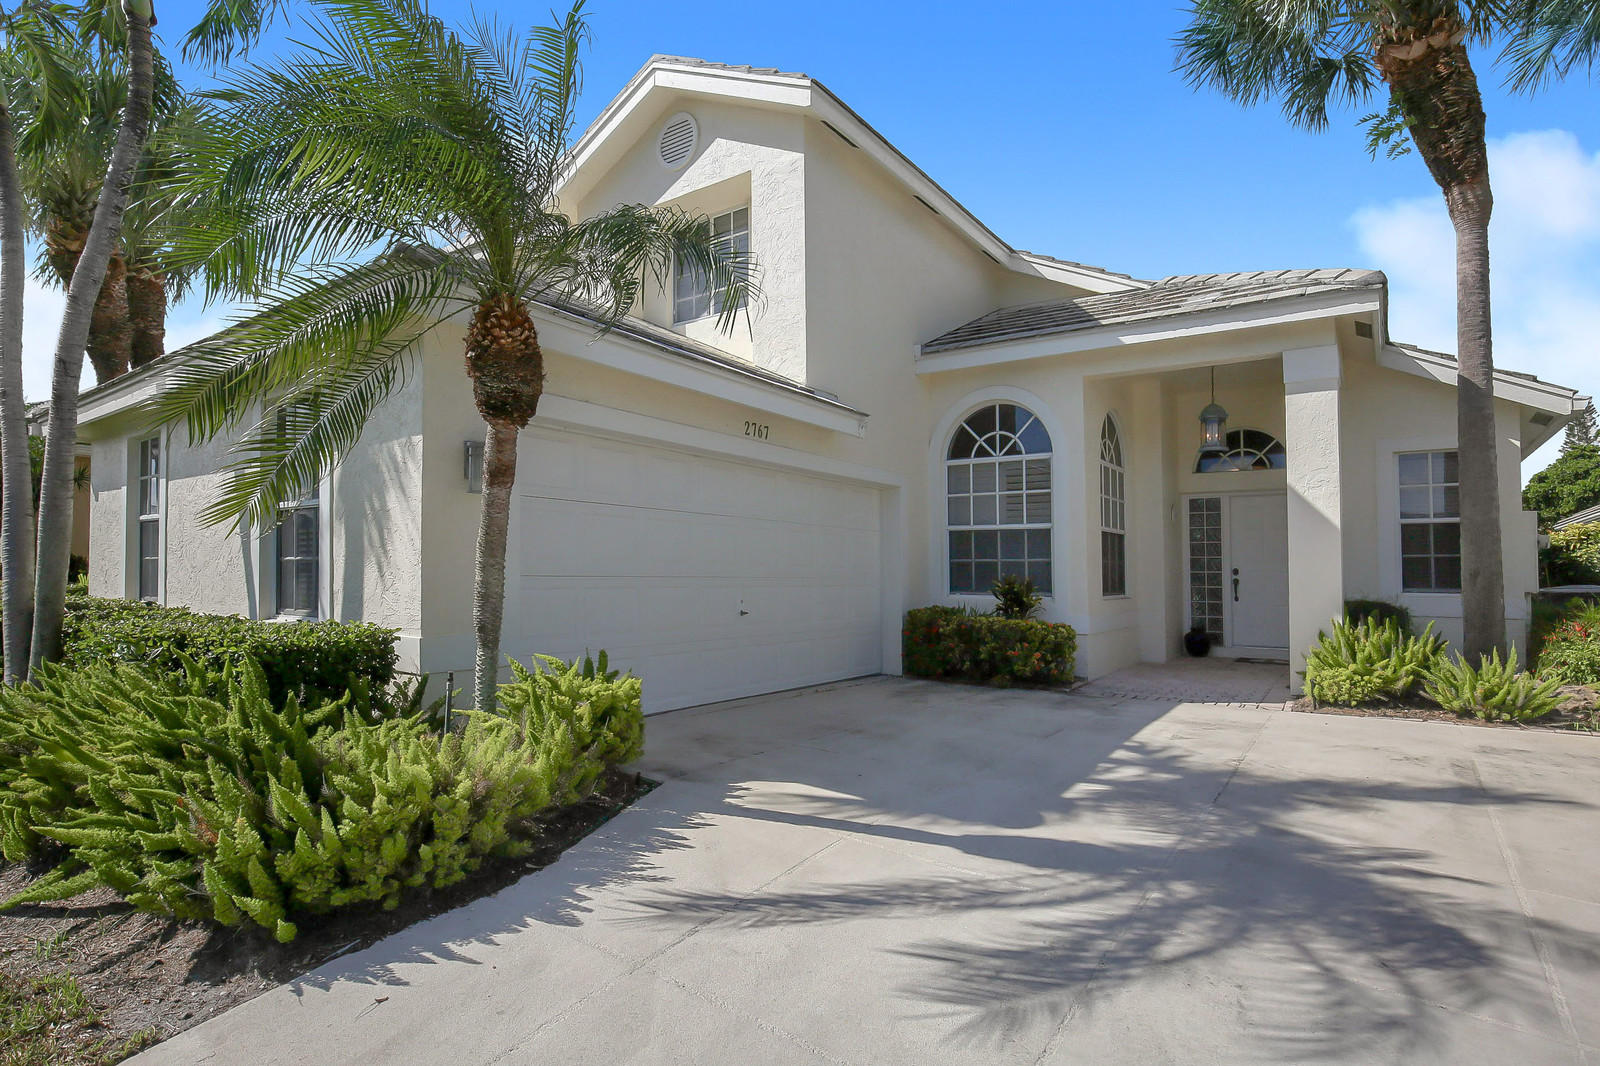 Home for sale in Clearbrook Delray Beach Florida